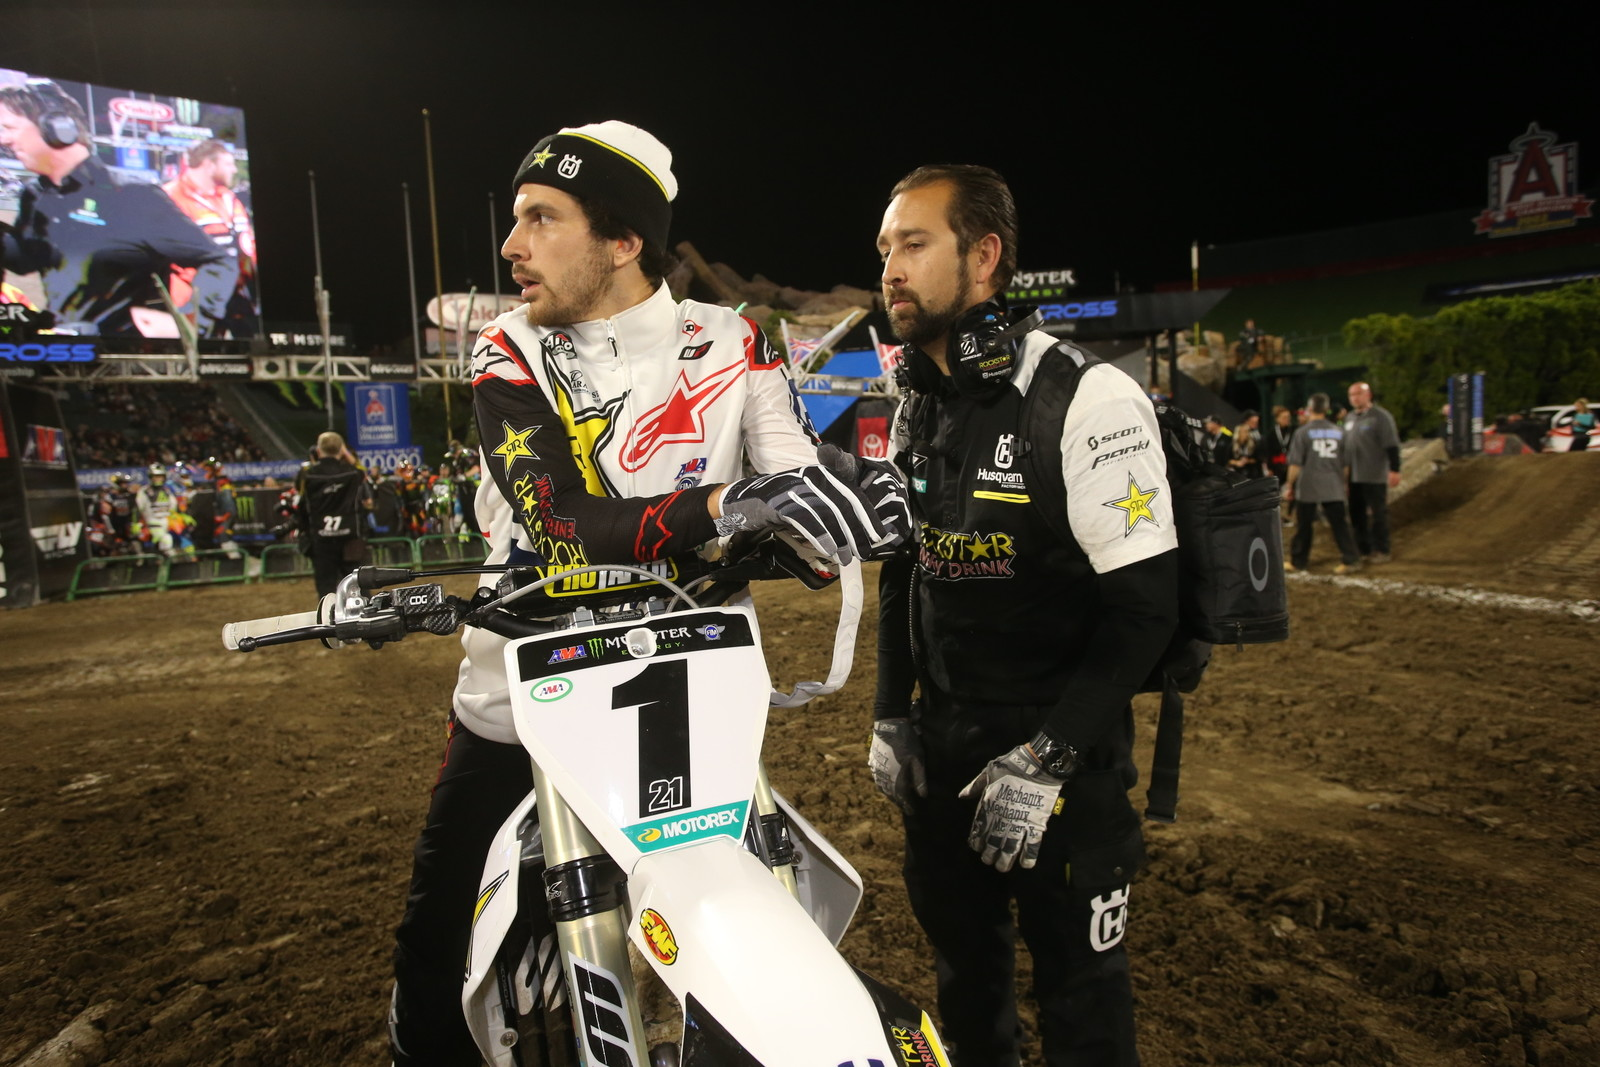 Jason Anderson Sustains Injury in Practice Crash